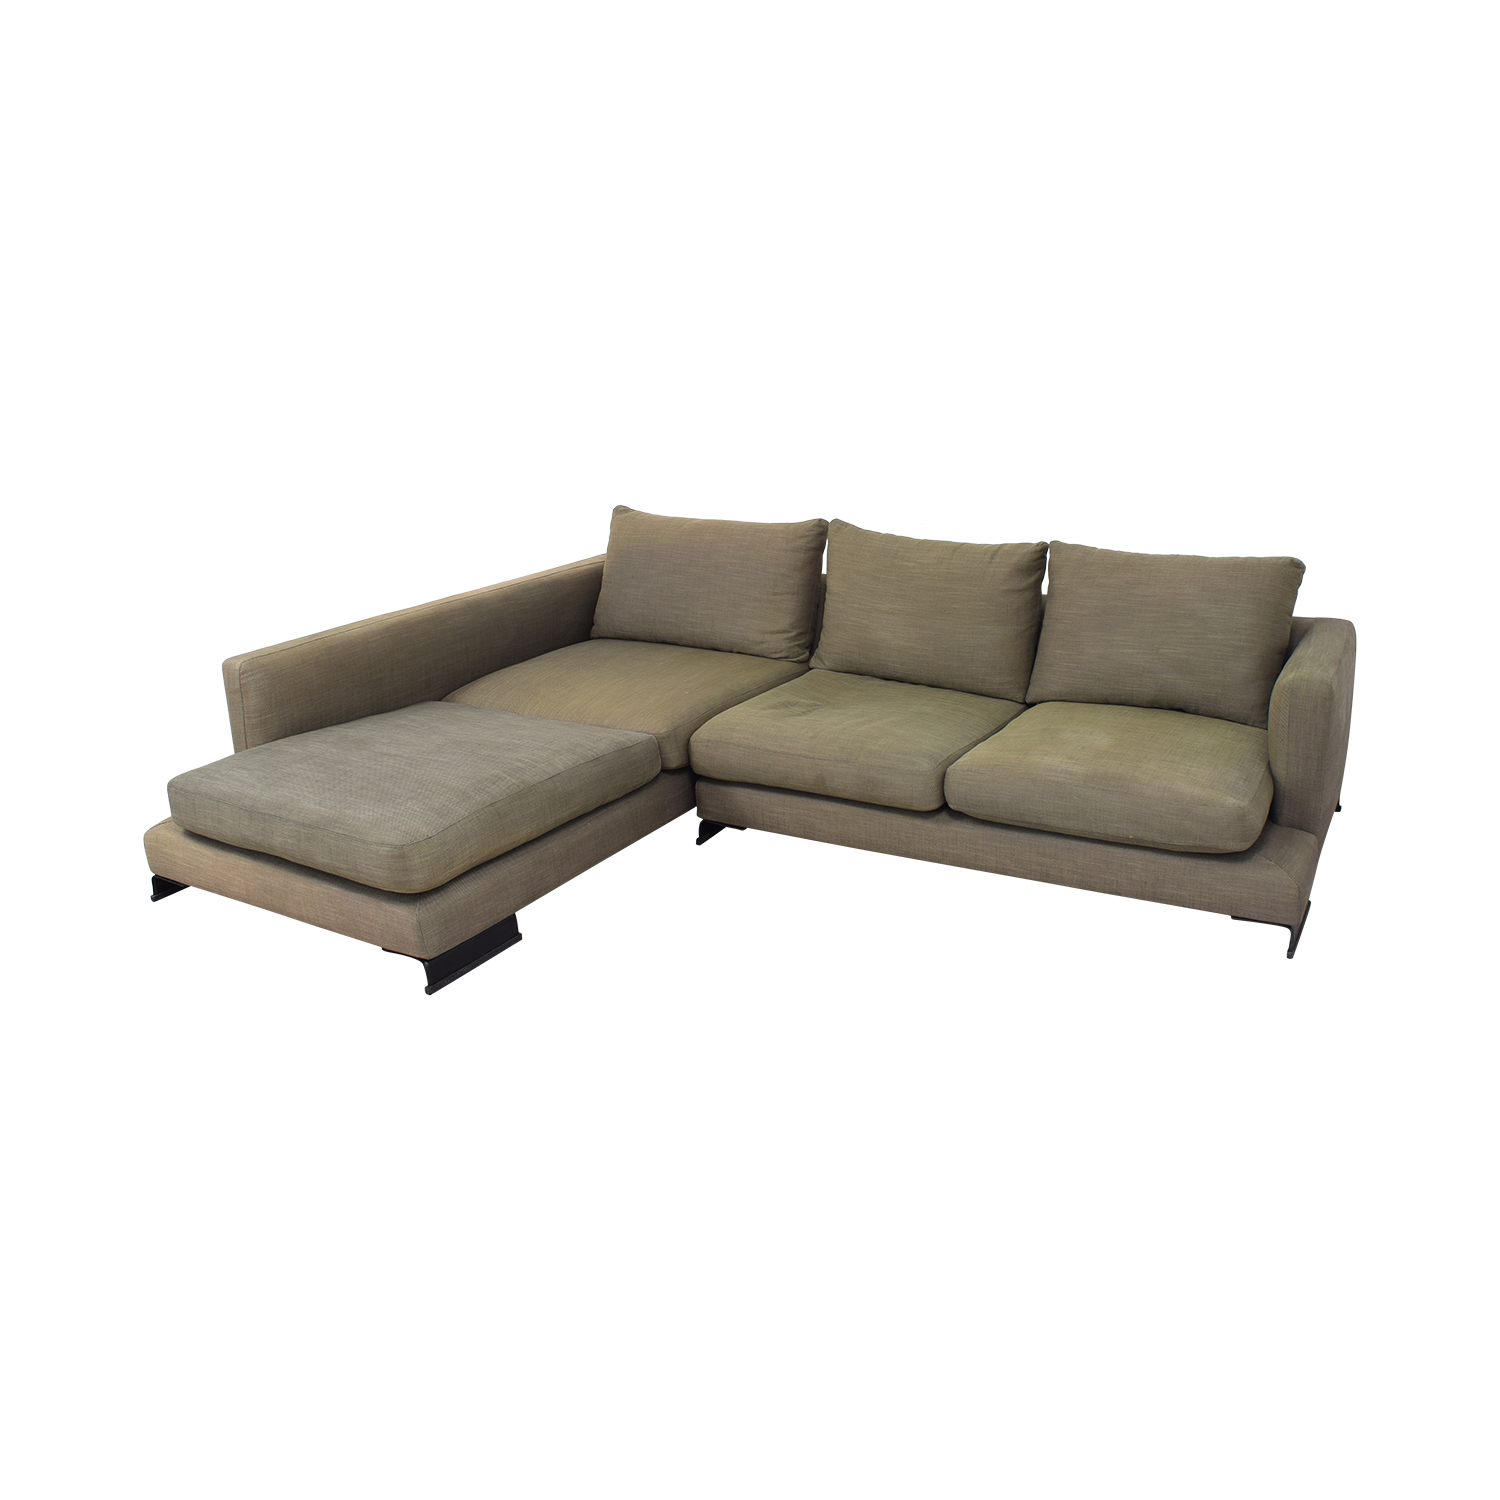 Camerich Camerich Lazy Time Sectional Sofa Sectionals